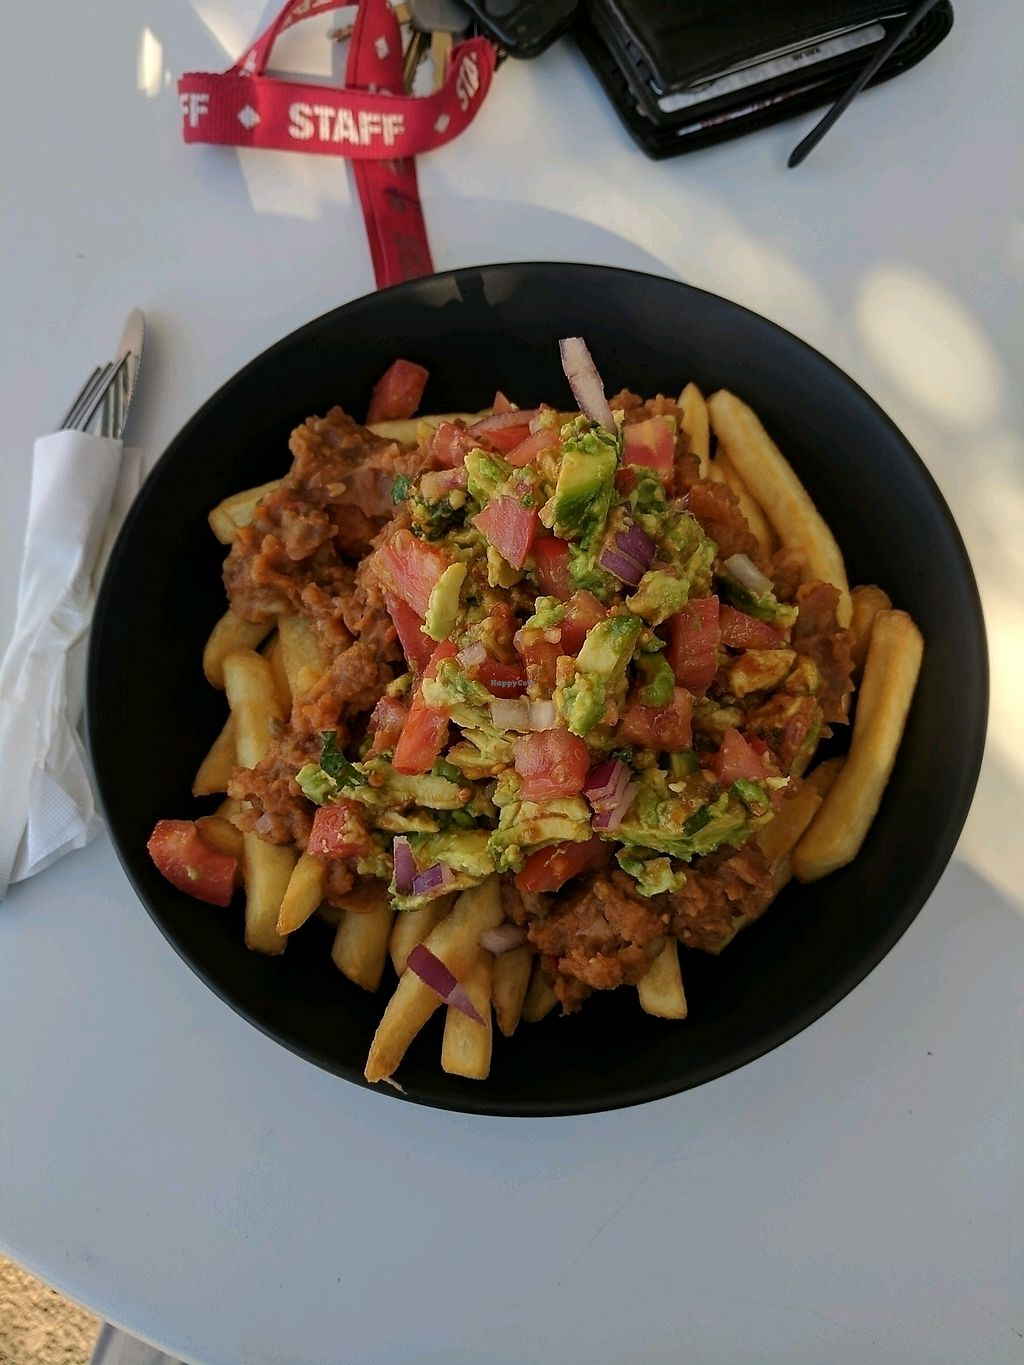 """Photo of Il Pozzo Cafe  by <a href=""""/members/profile/KailanChapman"""">KailanChapman</a> <br/>loaded fries! <br/> August 22, 2017  - <a href='/contact/abuse/image/98736/295438'>Report</a>"""